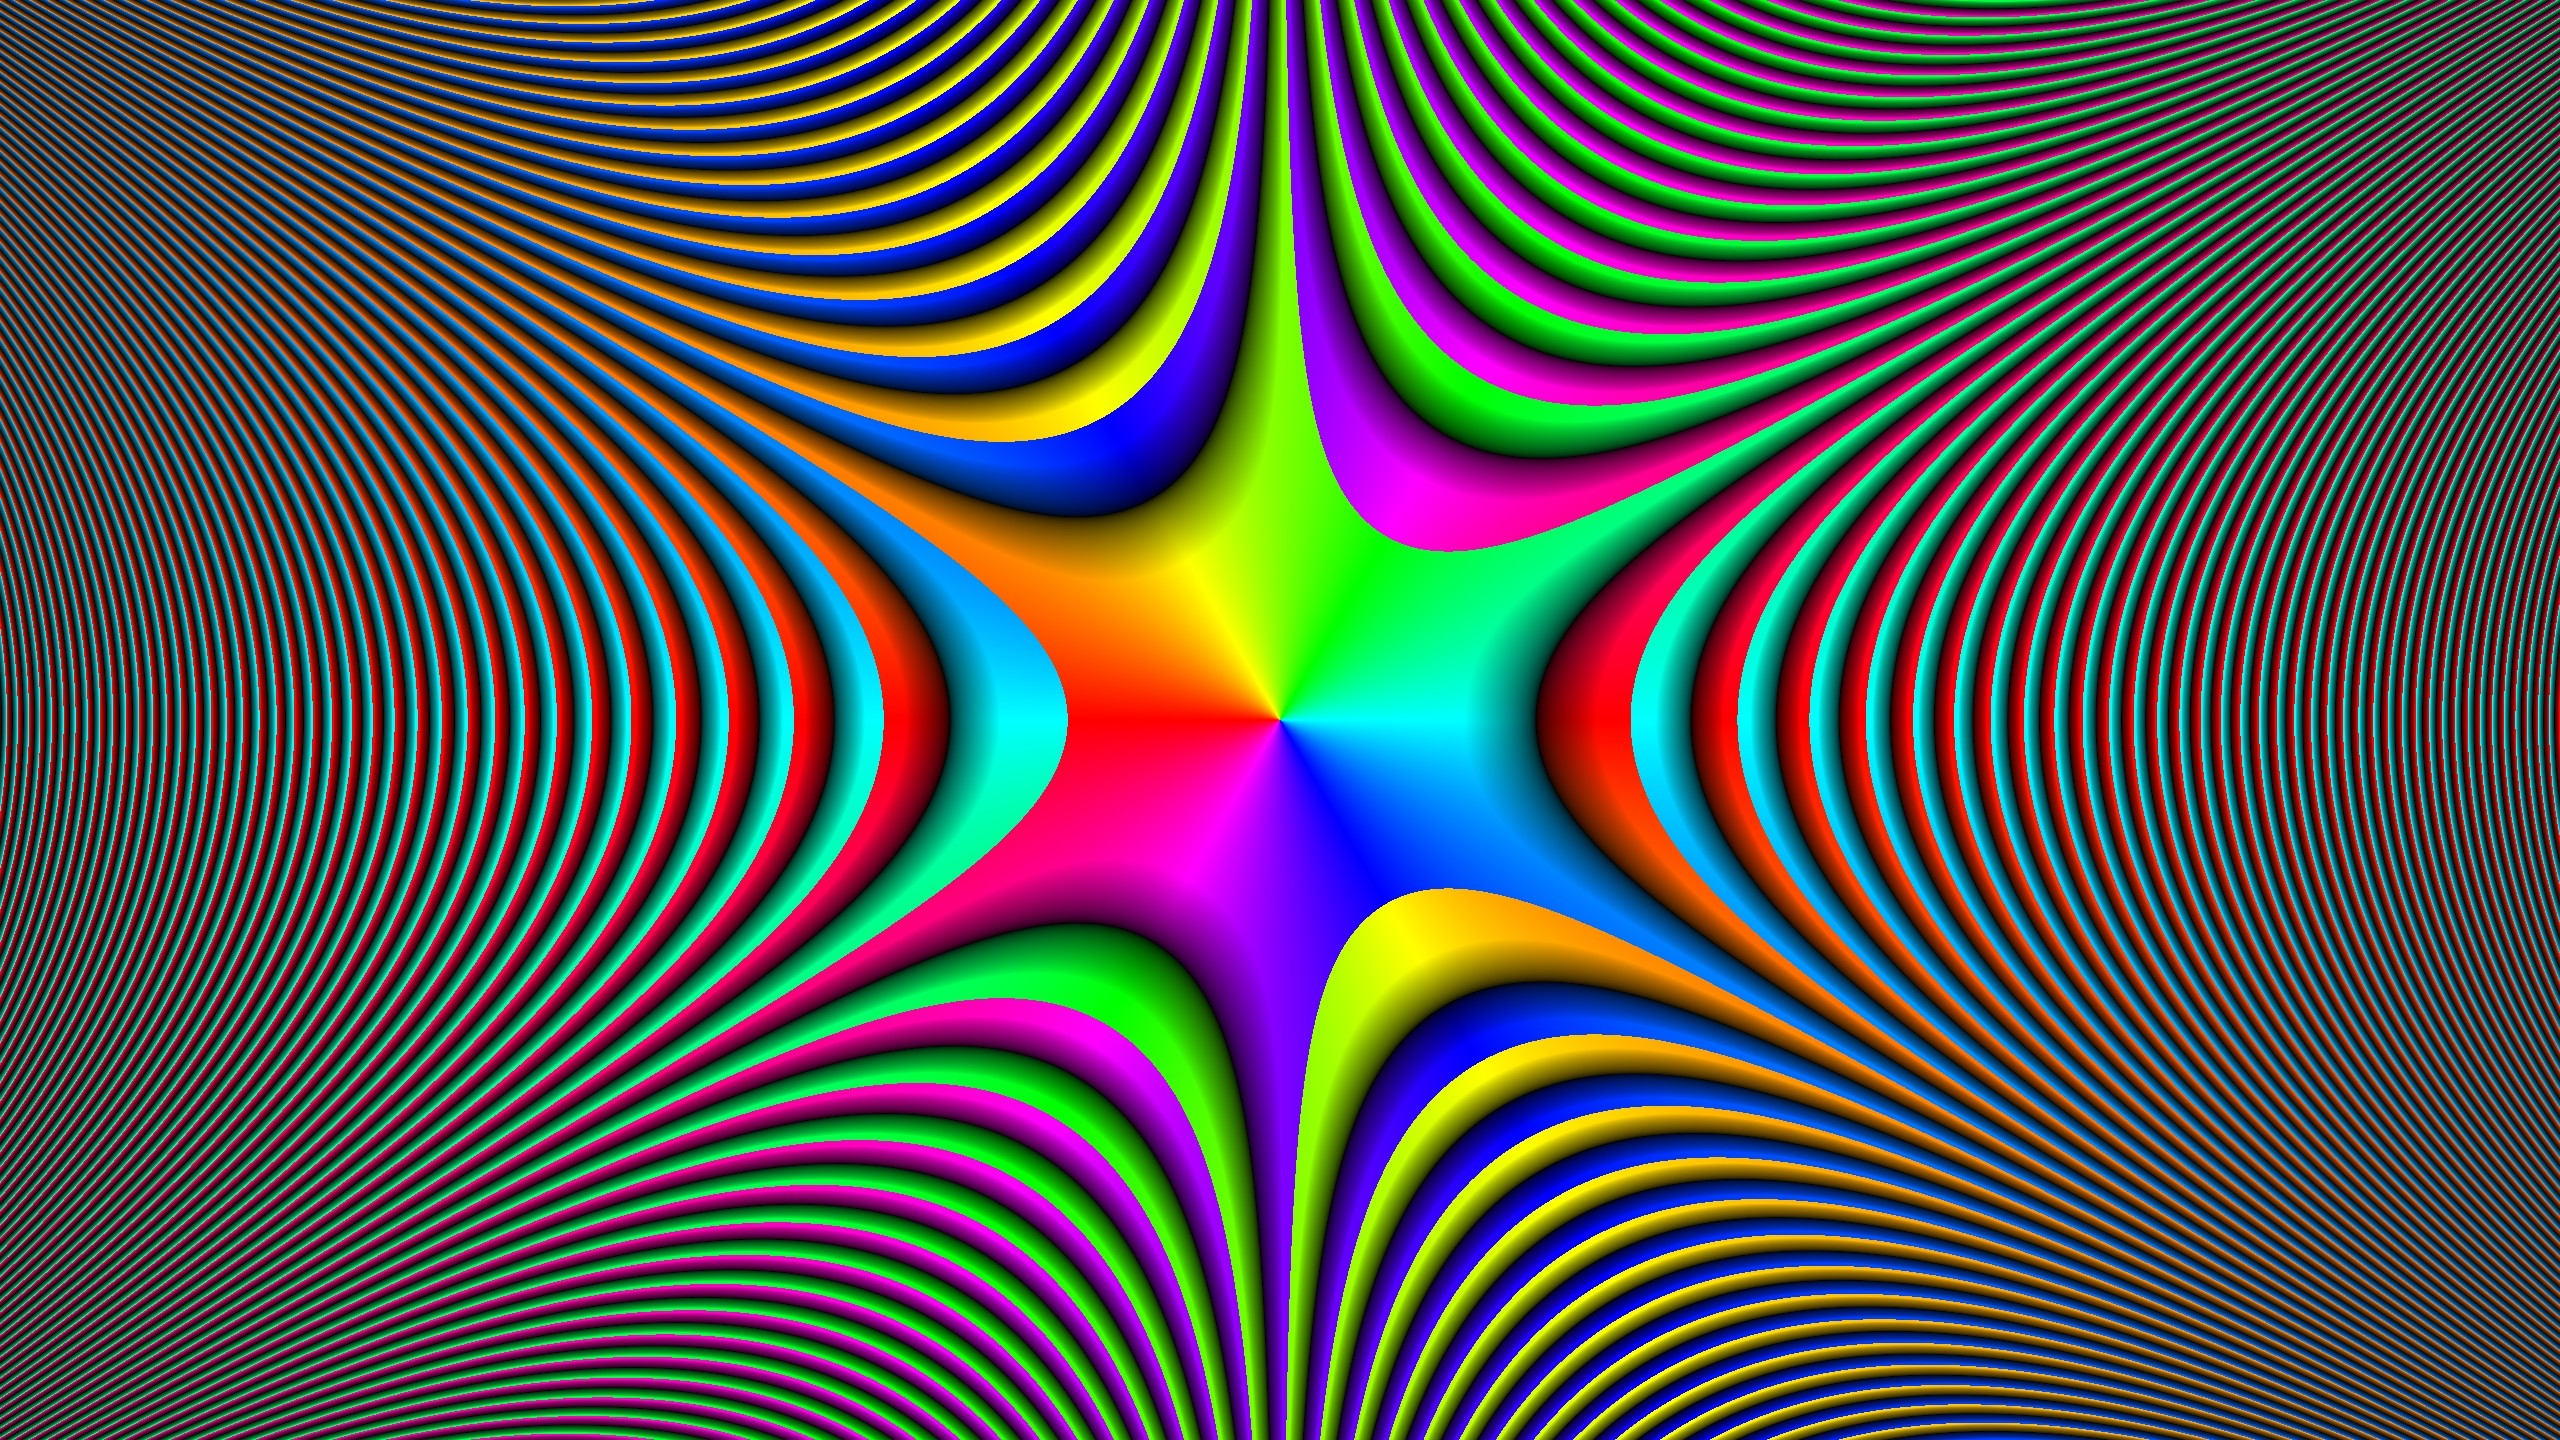 Res: 2560x1440, Full HD 1080p Optical illusion Wallpapers HD - HD Wallpapers